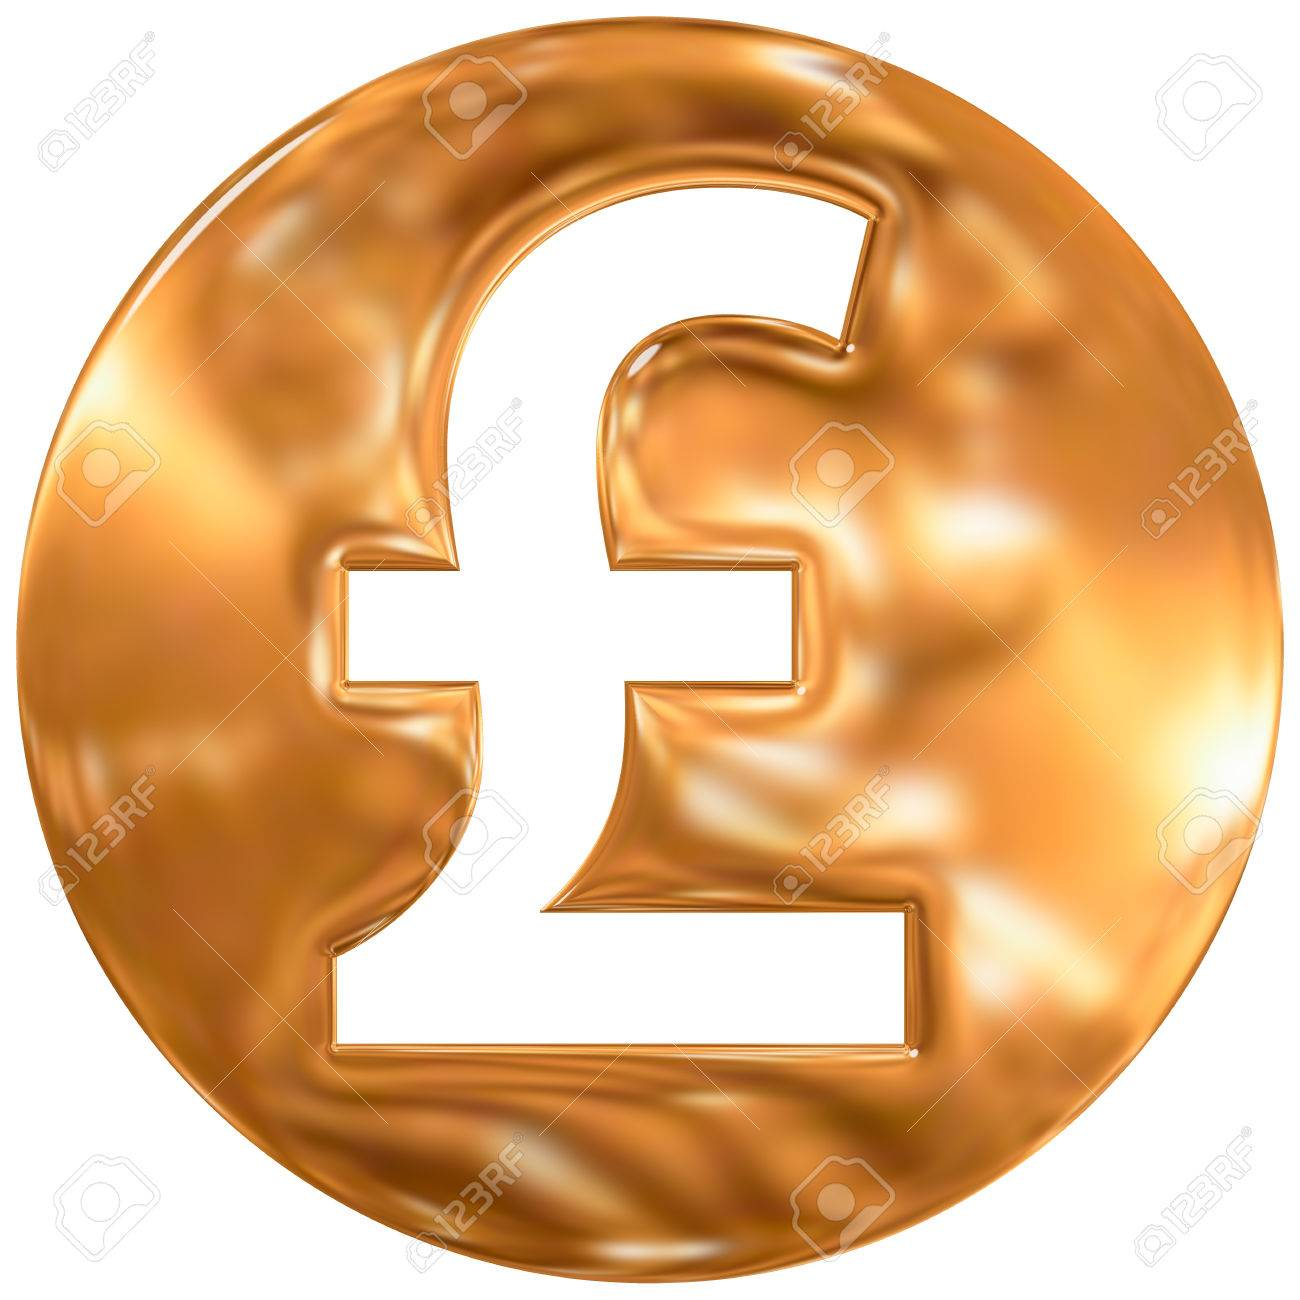 British pound sterling currency symbol united kingdom gold stock british pound sterling currency symbol united kingdom gold finishing stock photo 49579133 biocorpaavc Gallery